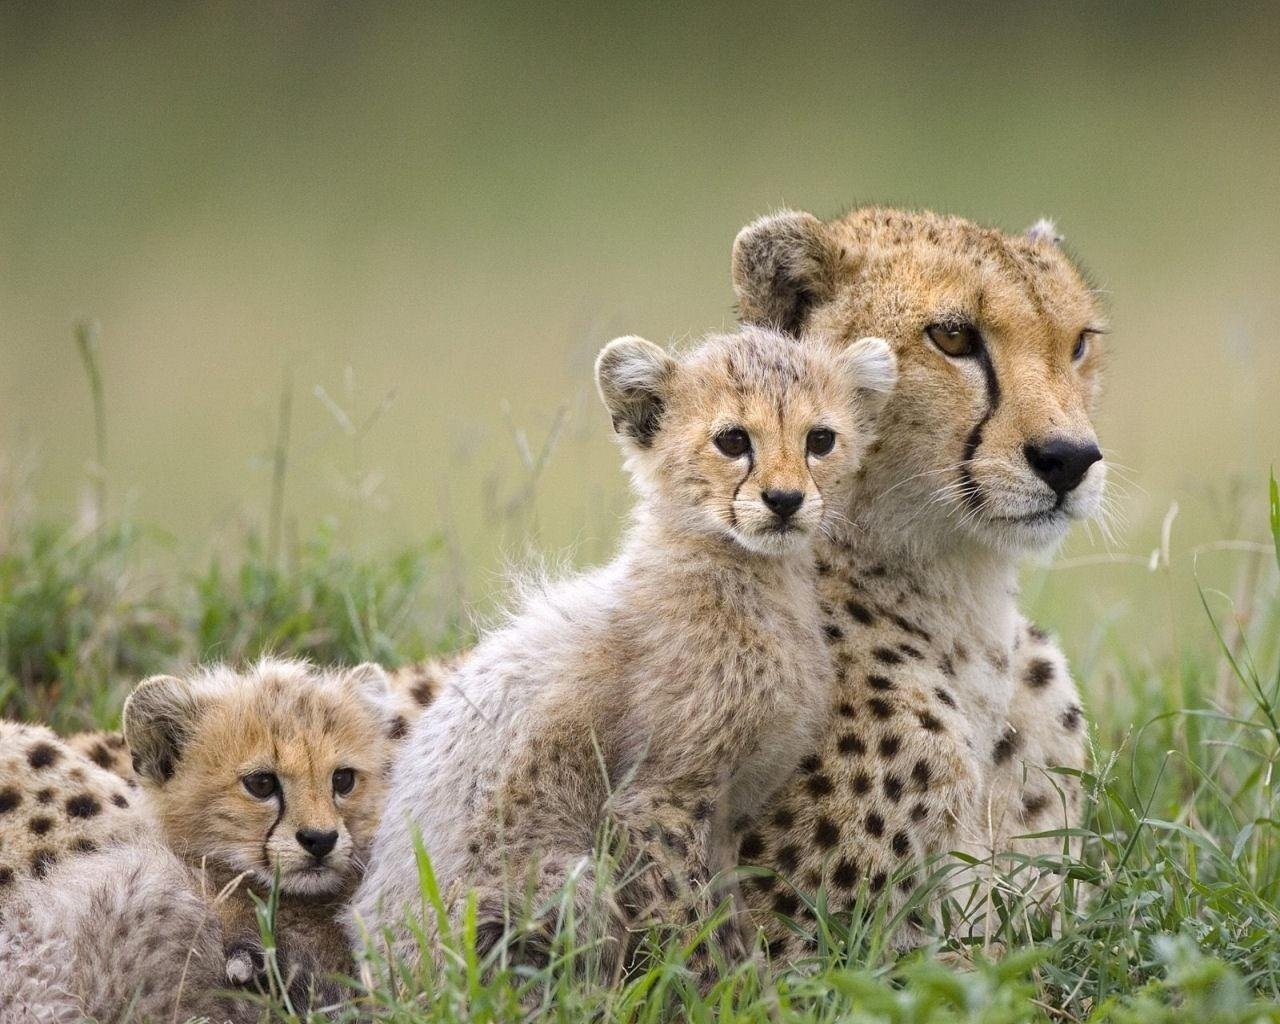 of Babies of Beautiful Wild Animals: Mara animals wildlife safaris